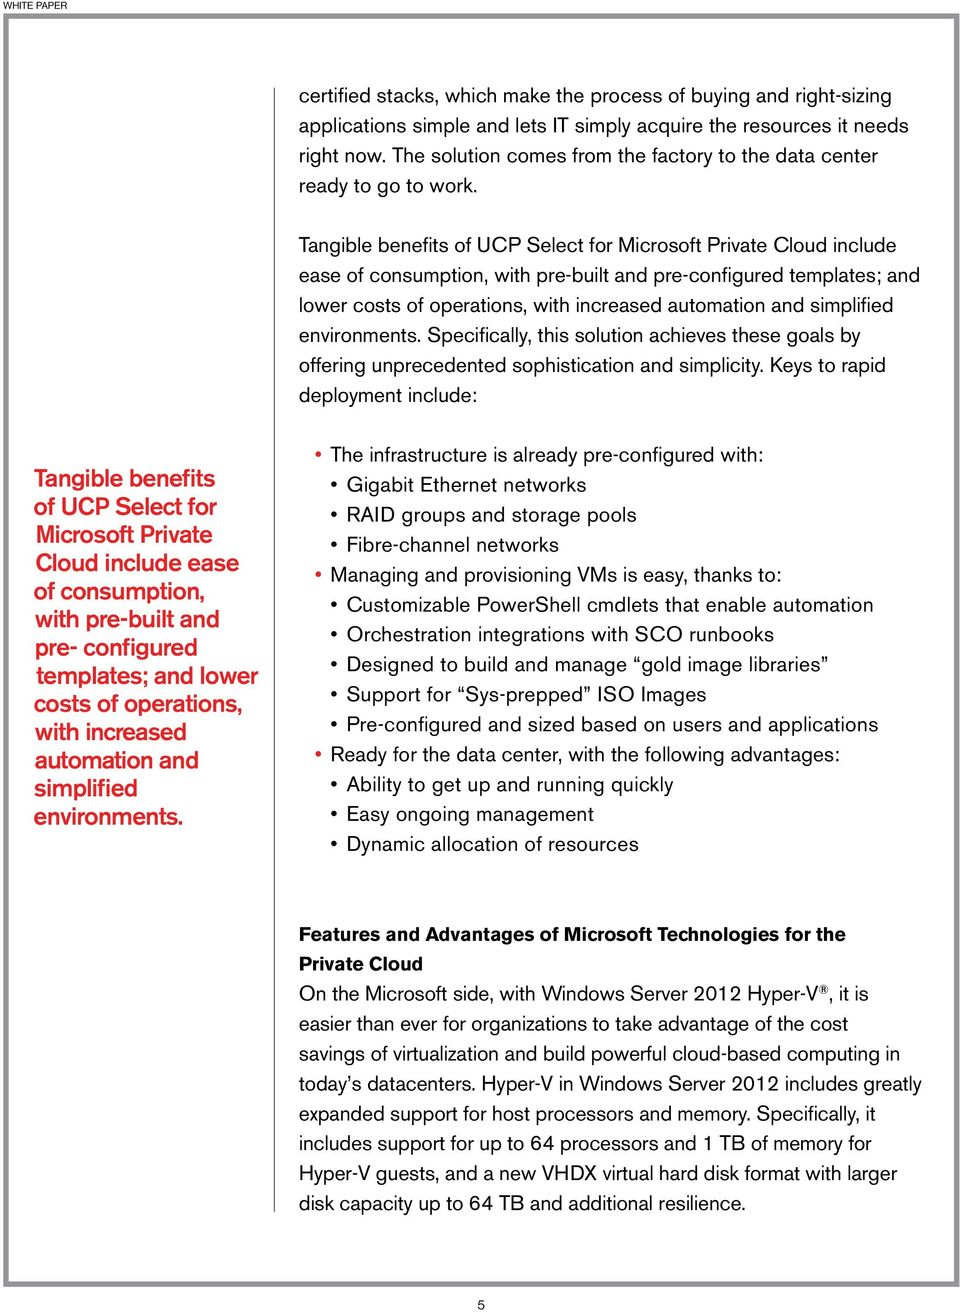 Tangible benefits of UCP Select for Microsoft Private Cloud include ease of consumption, with pre-built and pre-configured templates; and lower costs of operations, with increased automation and